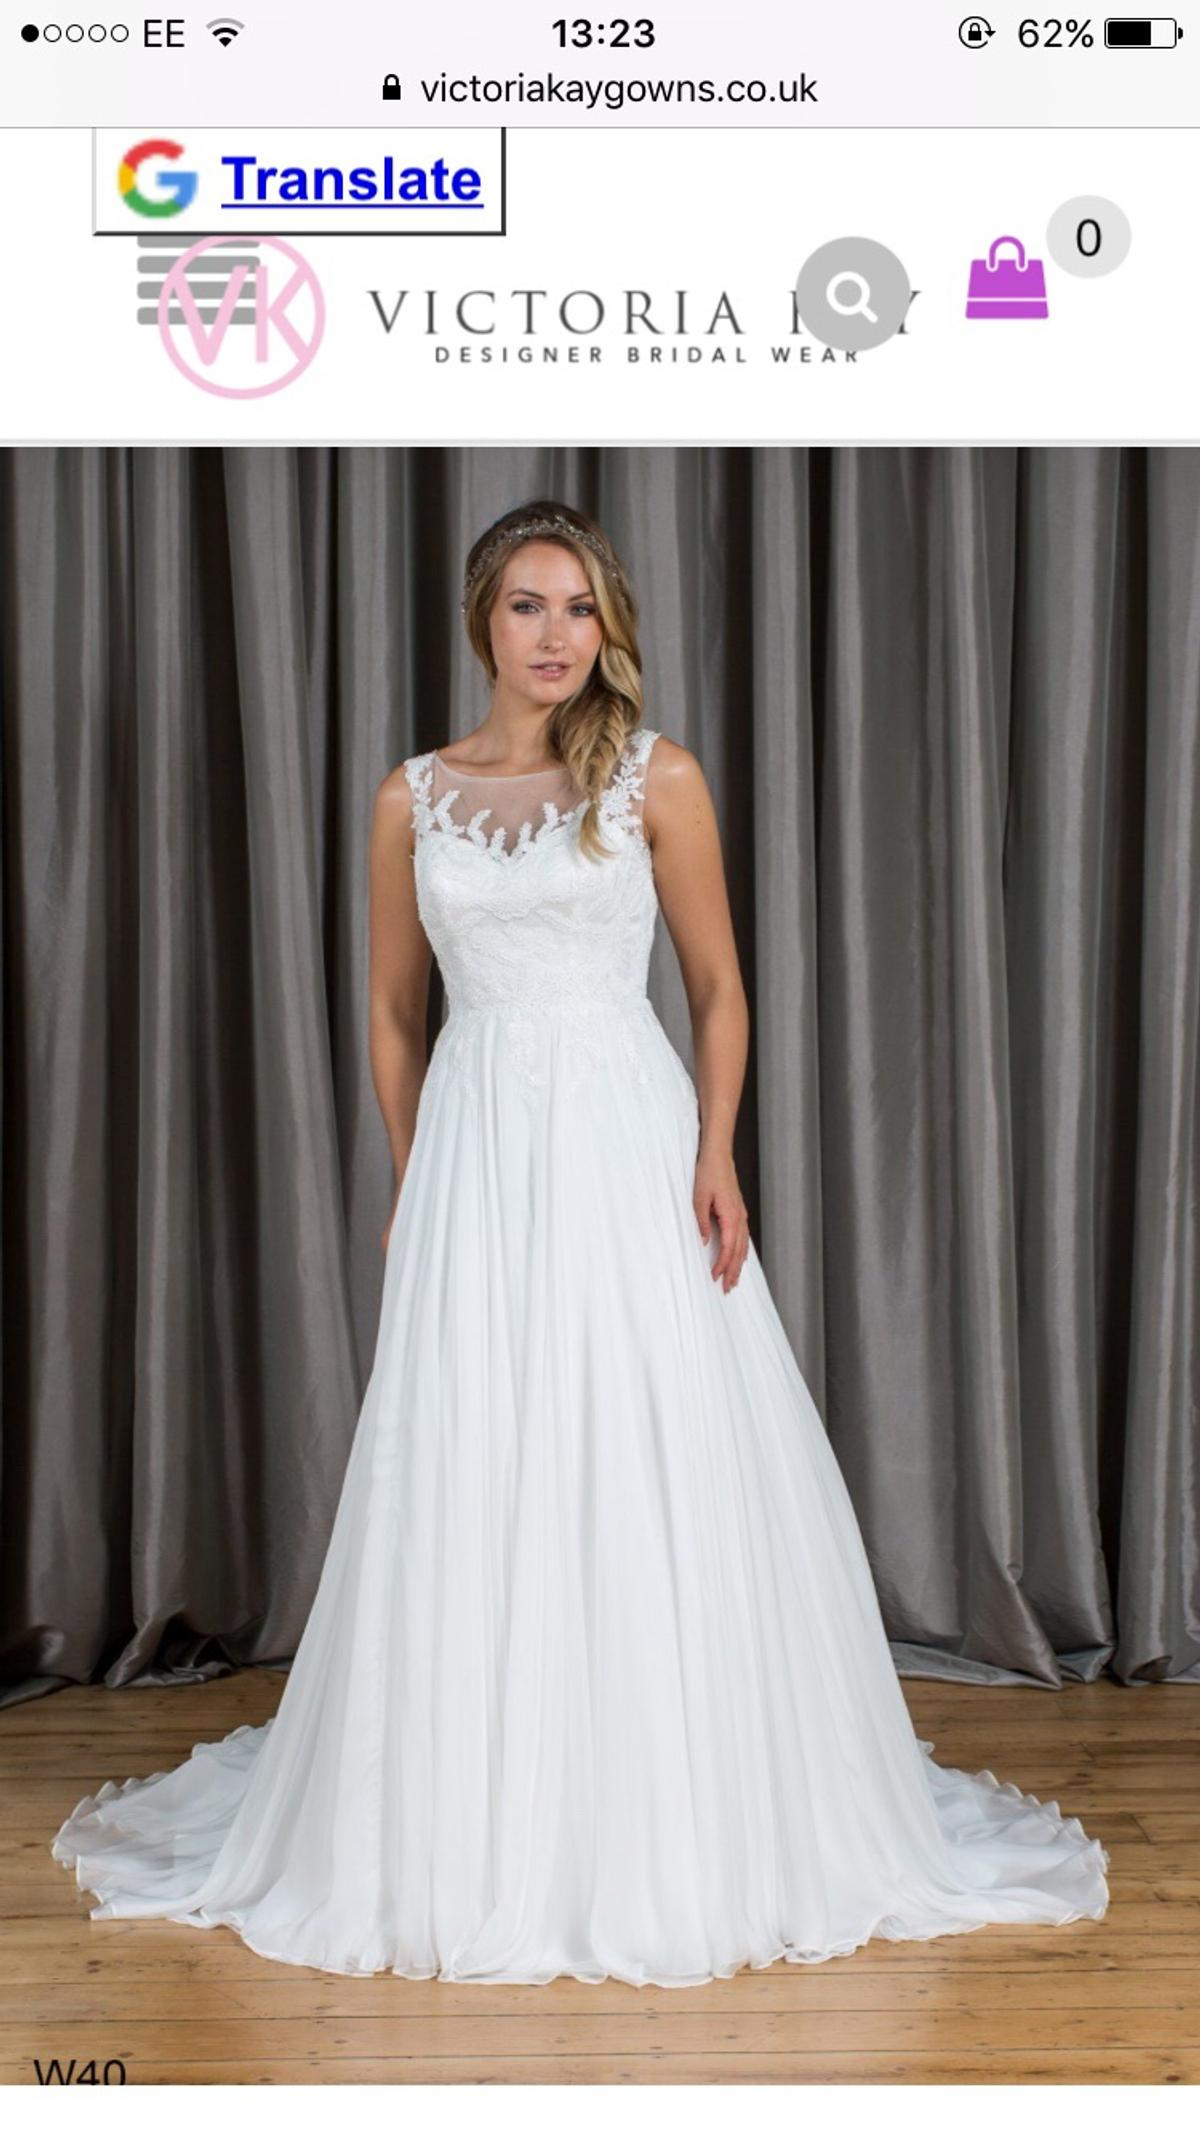 Victoria Kay Wedding Dress New In Tn34 Hastings For 600 00 For